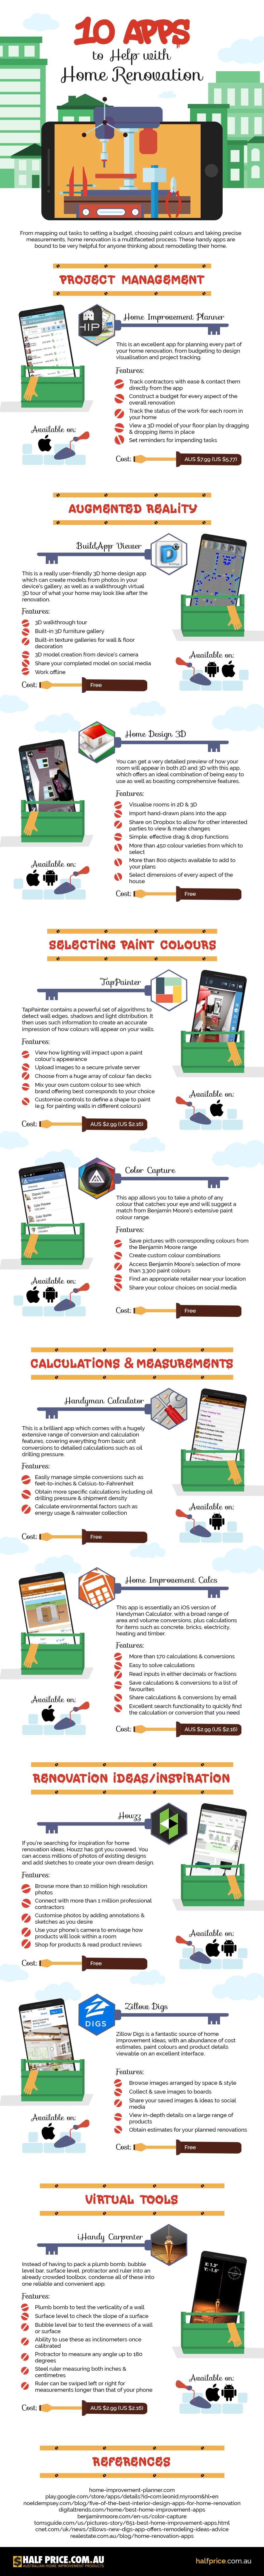 Dream to Reality: Home Renovation Apps - Infographic